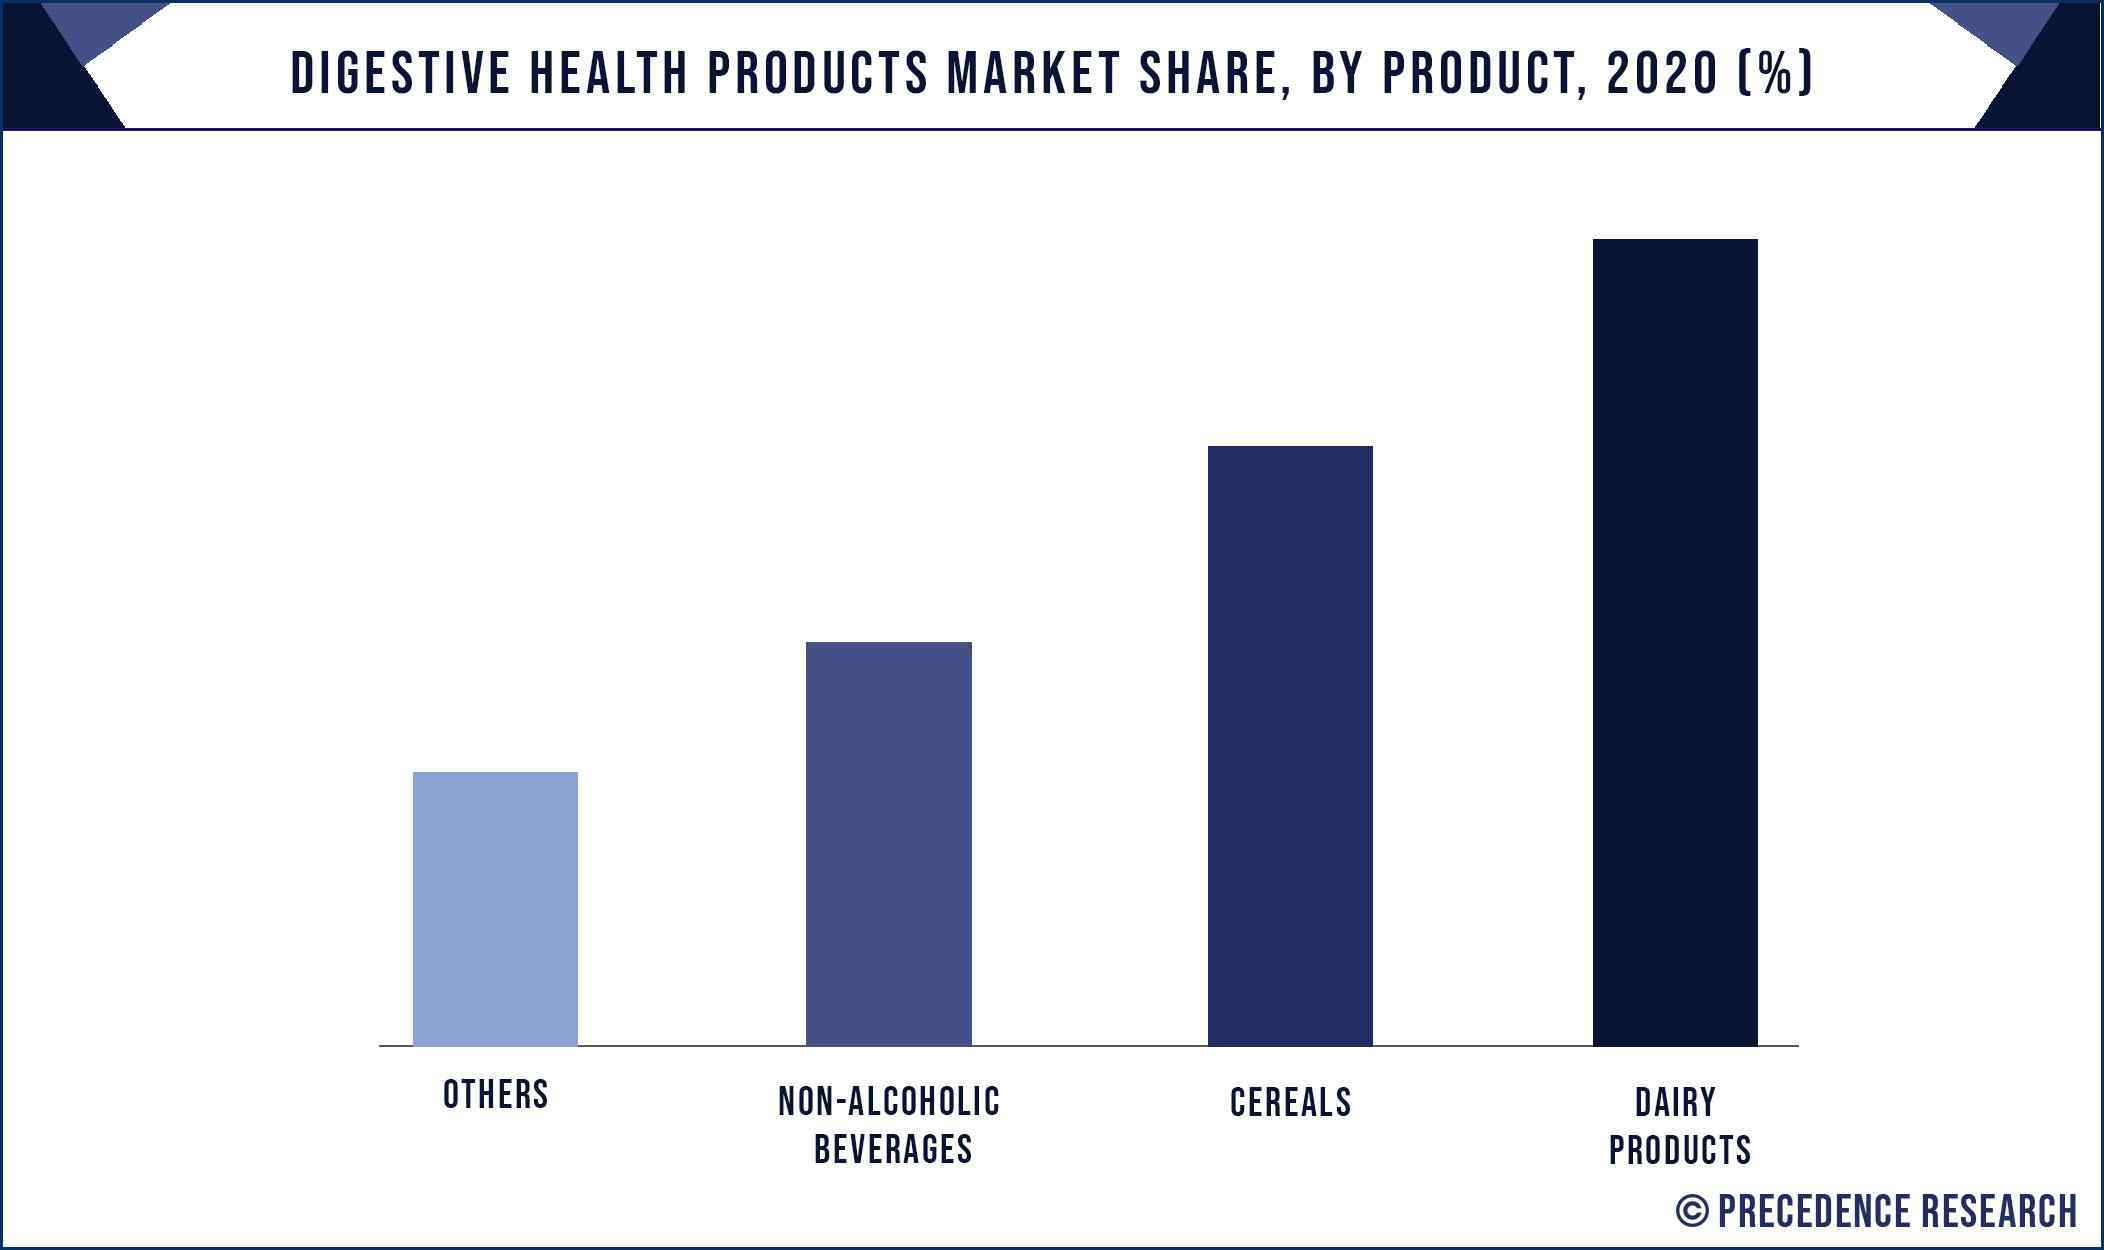 Digestive Health Products Market Share, By Product, 2020 (%)